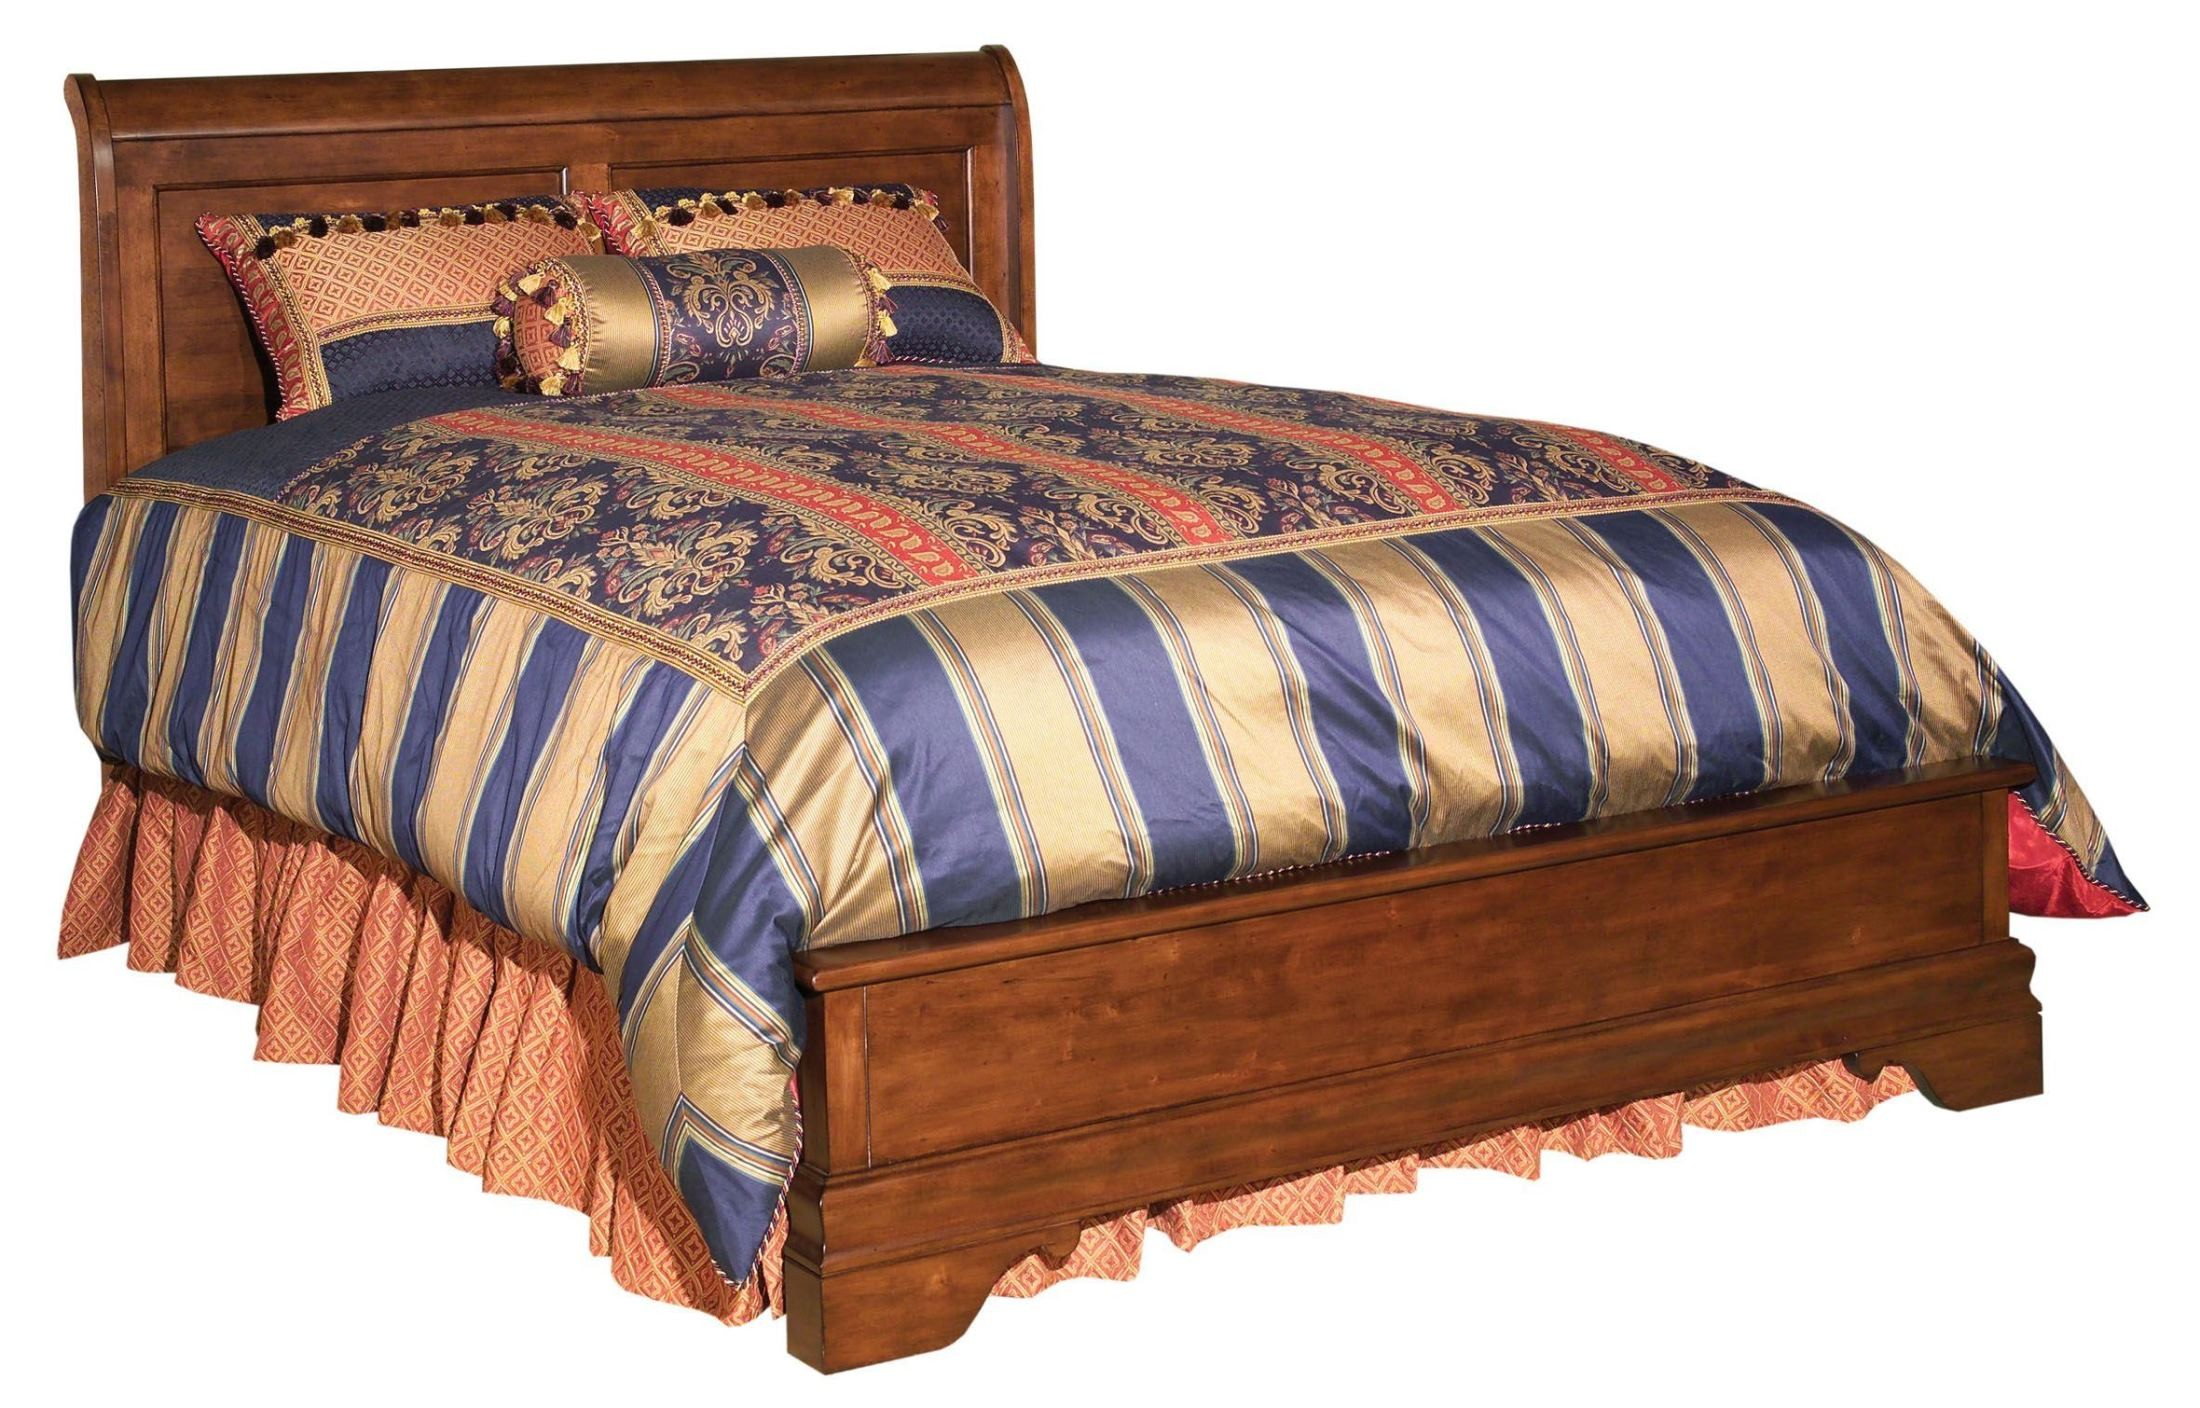 Chateau royale queen low profile bed from kincaid 53 155p for Chateau beds